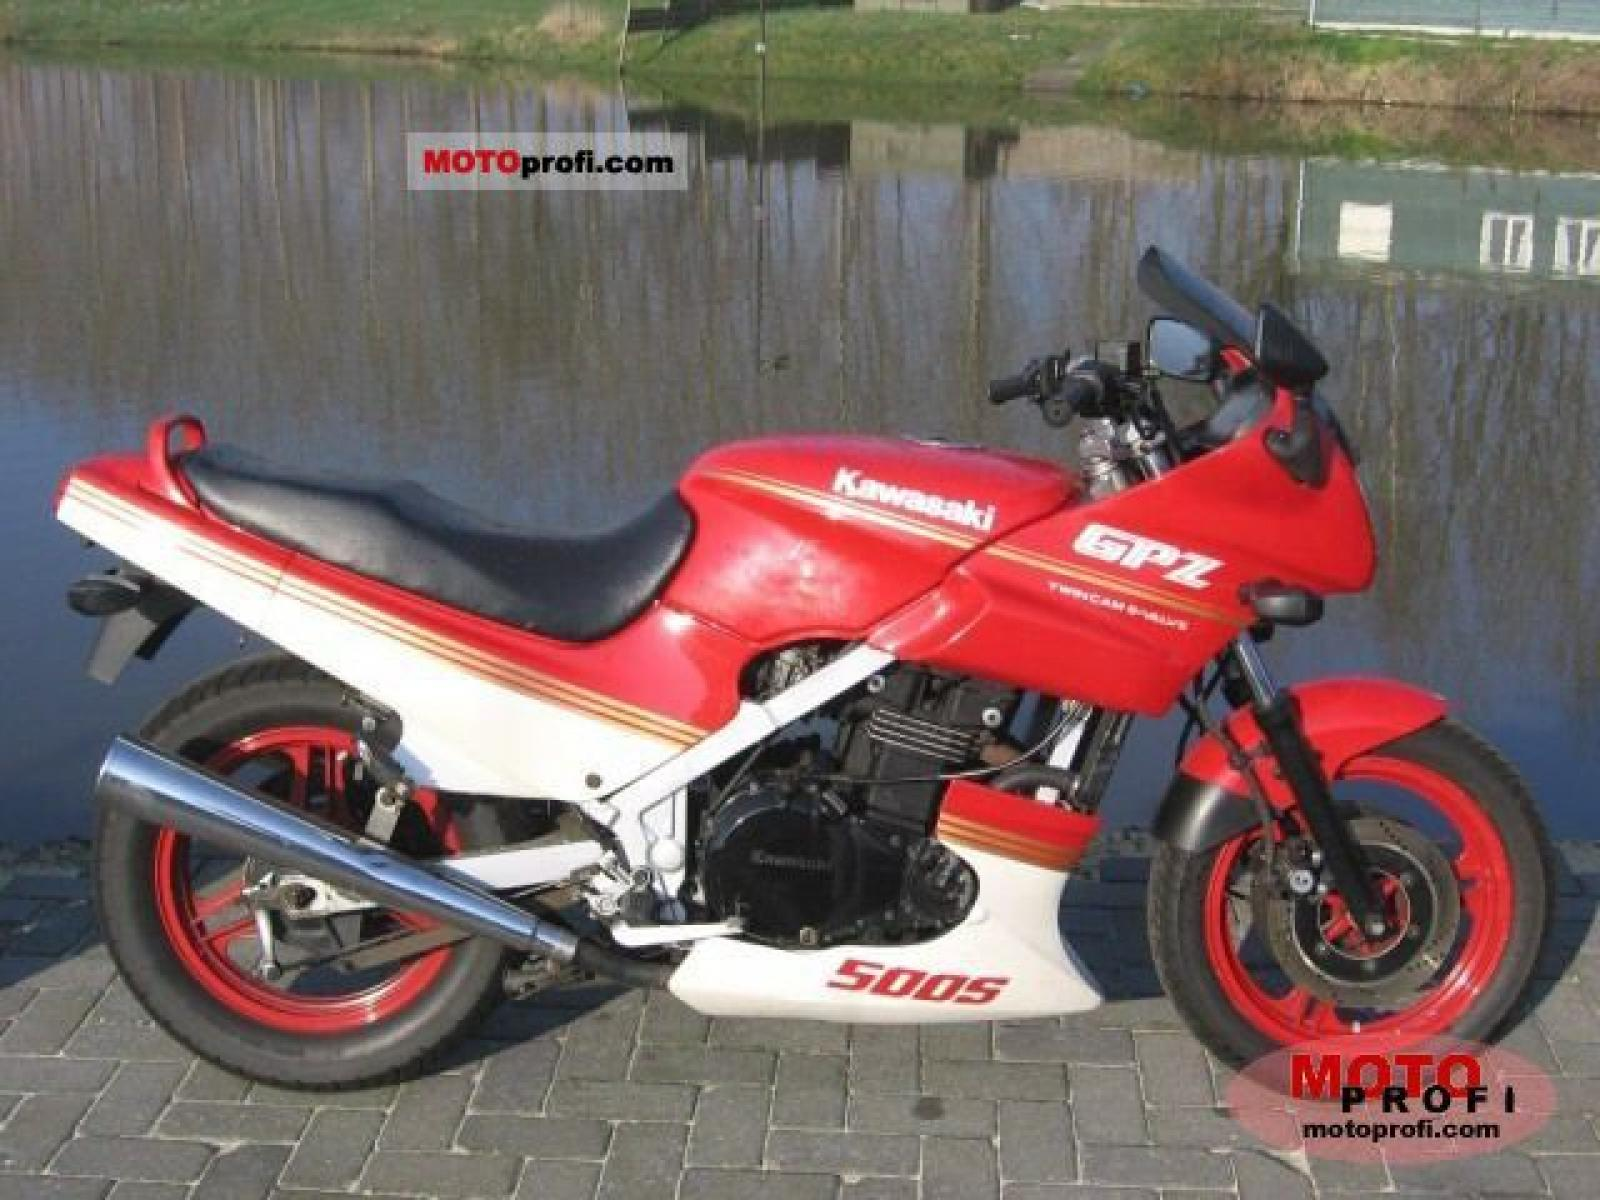 Kawasaki GPZ 500 S (reduced effect) 1988 images #83737